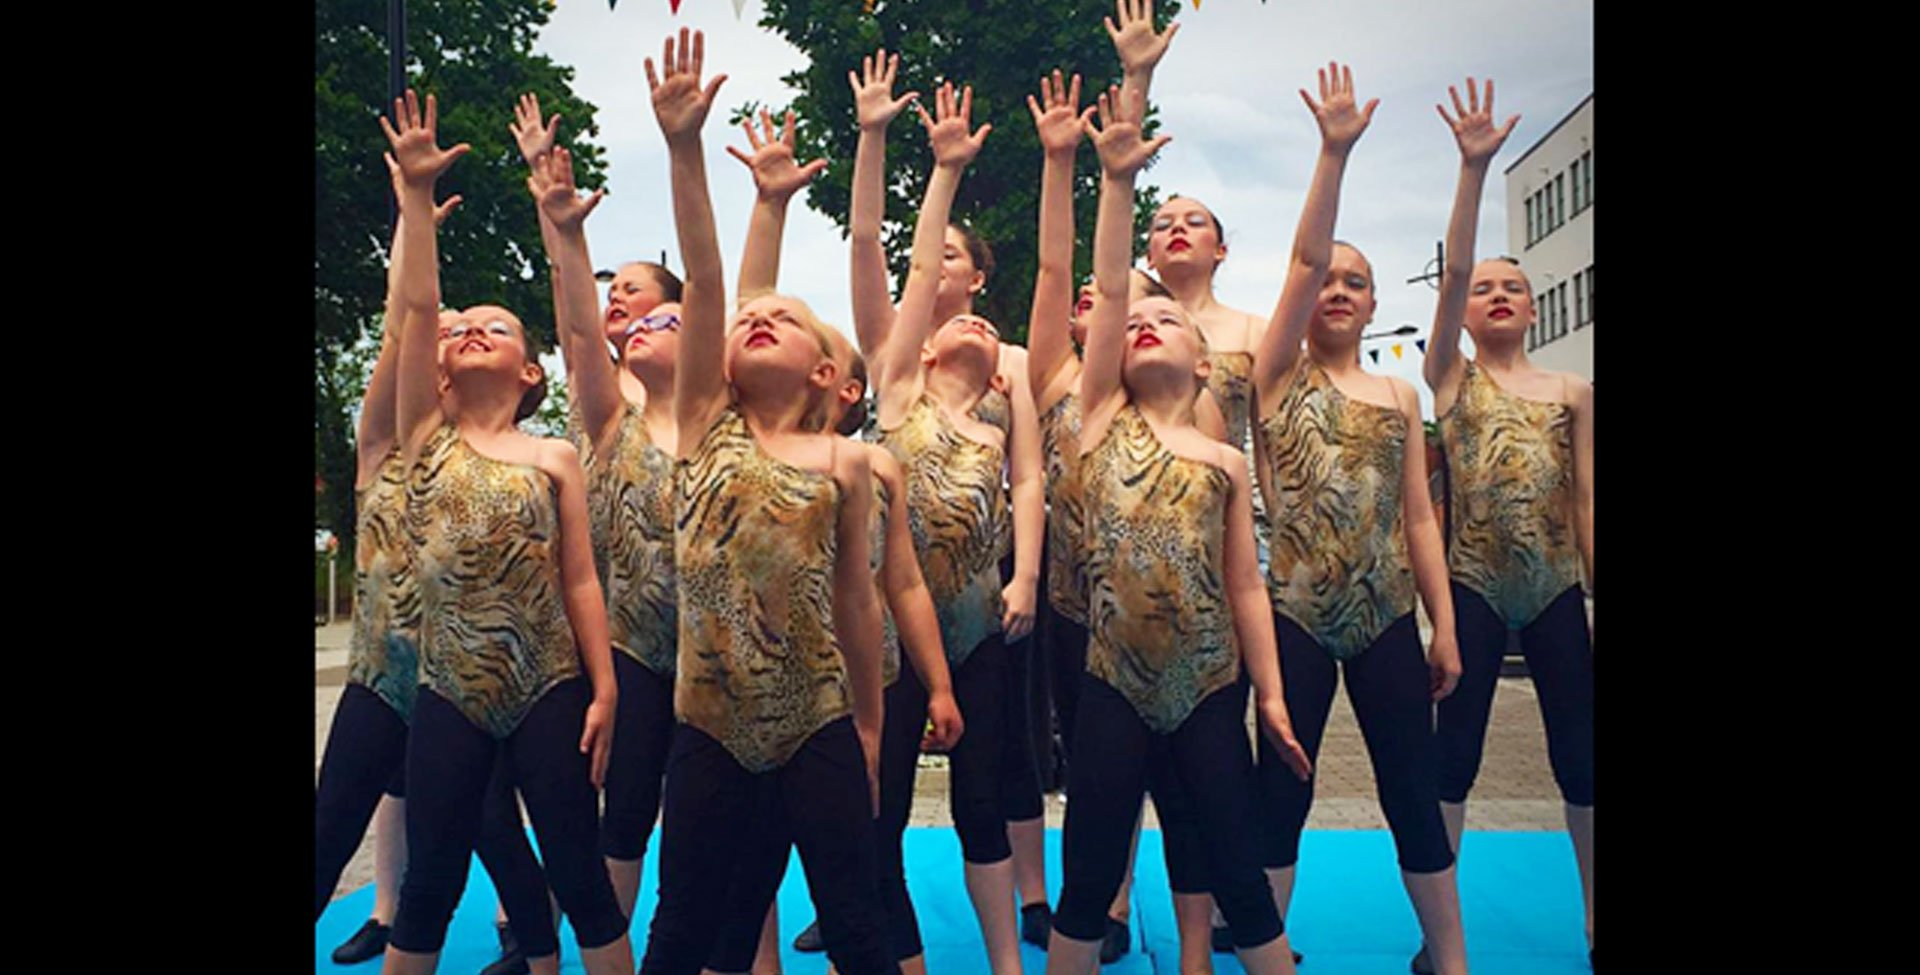 Children's dance performance